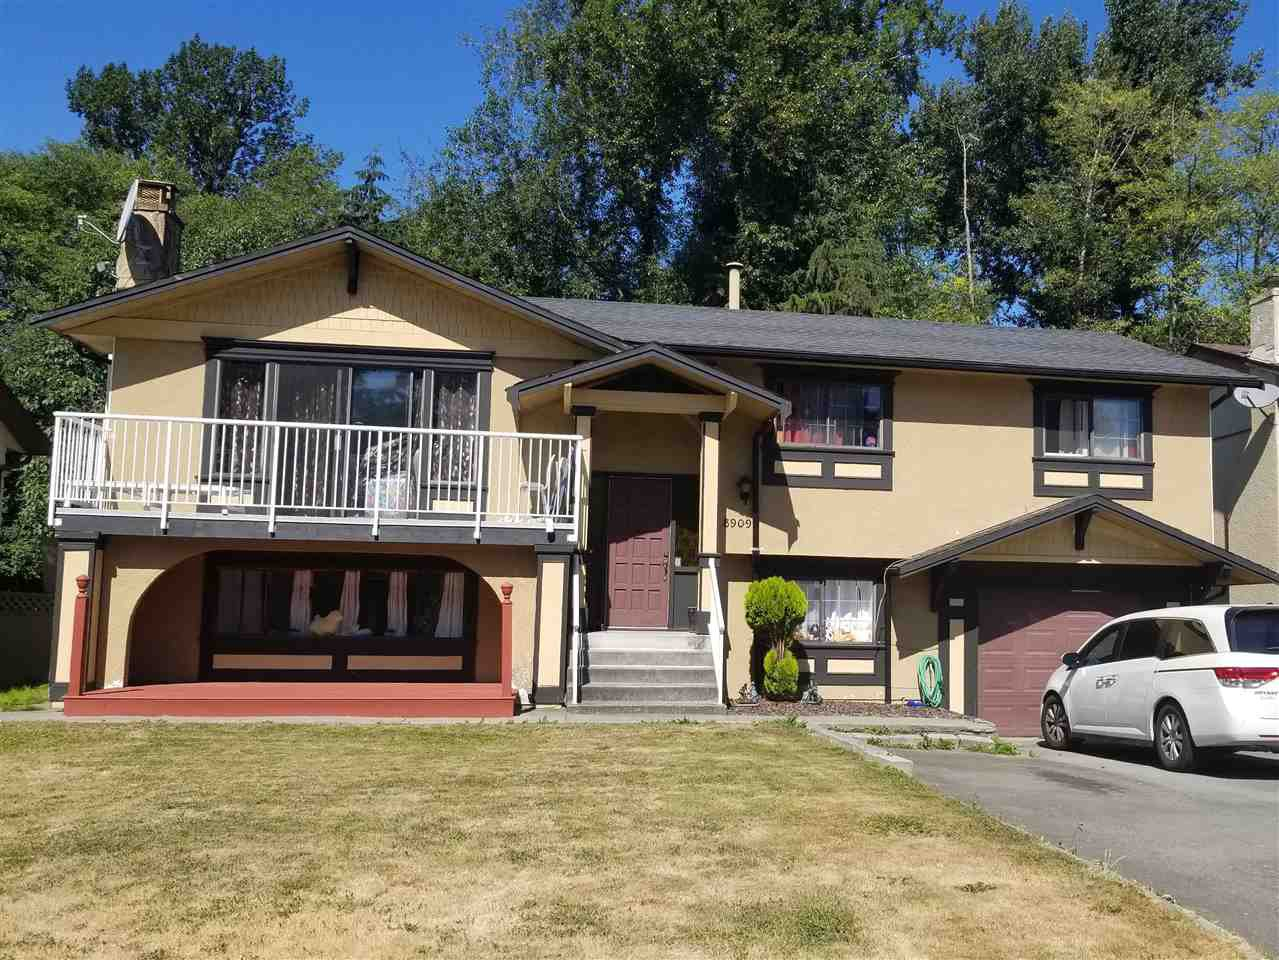 Main Photo: 8909 URSUS Crescent in Surrey: Bear Creek Green Timbers House for sale : MLS®# R2295804